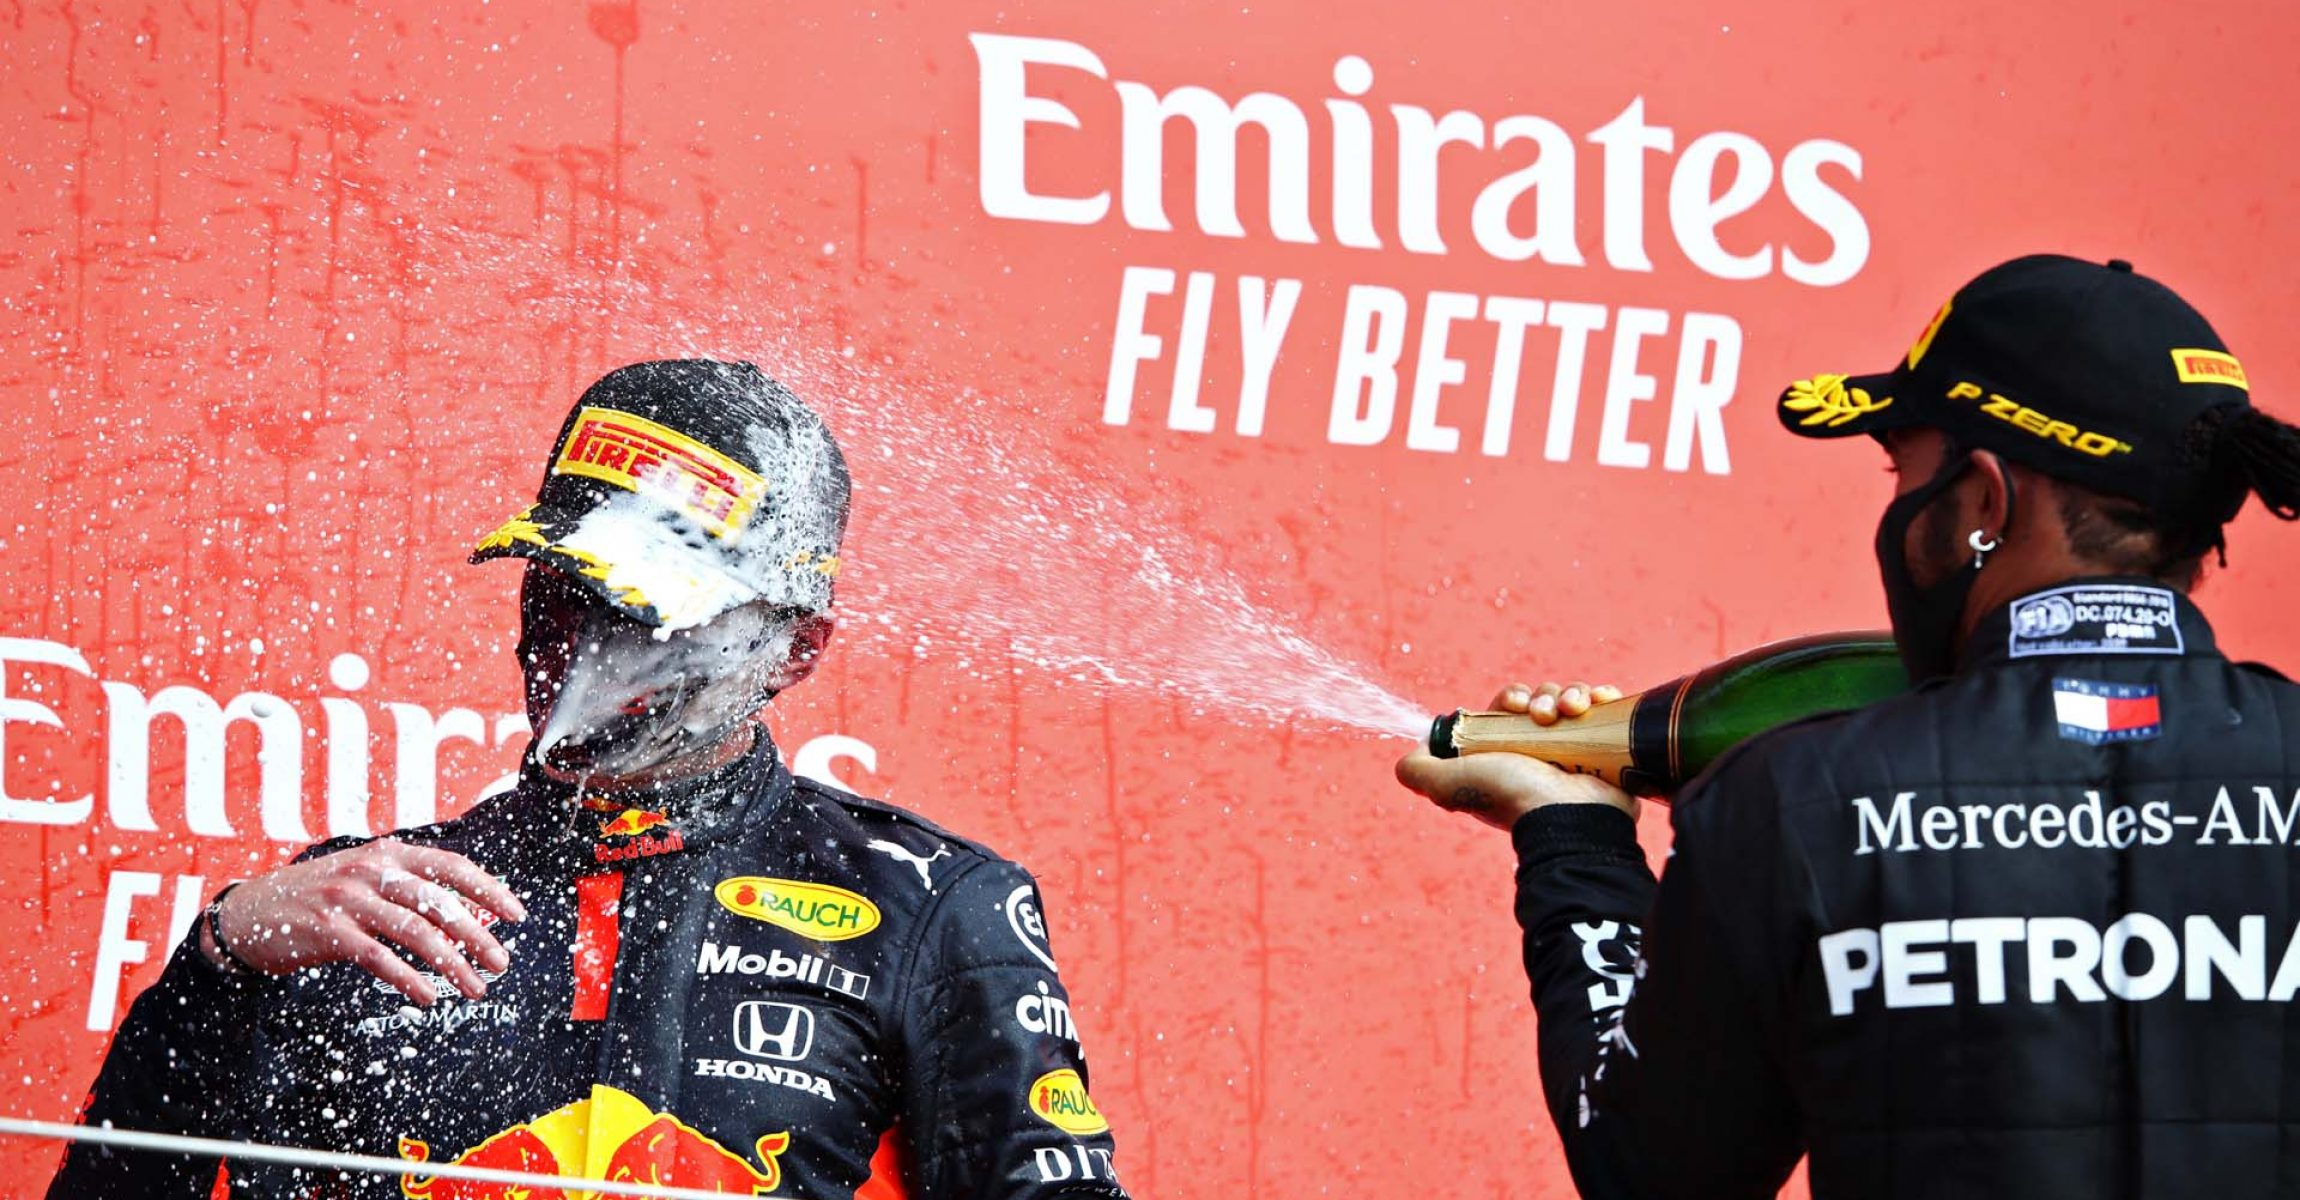 NORTHAMPTON, ENGLAND - AUGUST 09: Race winner Max Verstappen of Netherlands and Red Bull Racing and second placed Lewis Hamilton of Great Britain and Mercedes GP celebrate on the podium  during the F1 70th Anniversary Grand Prix at Silverstone on August 09, 2020 in Northampton, England. (Photo by Mark Thompson/Getty Images)